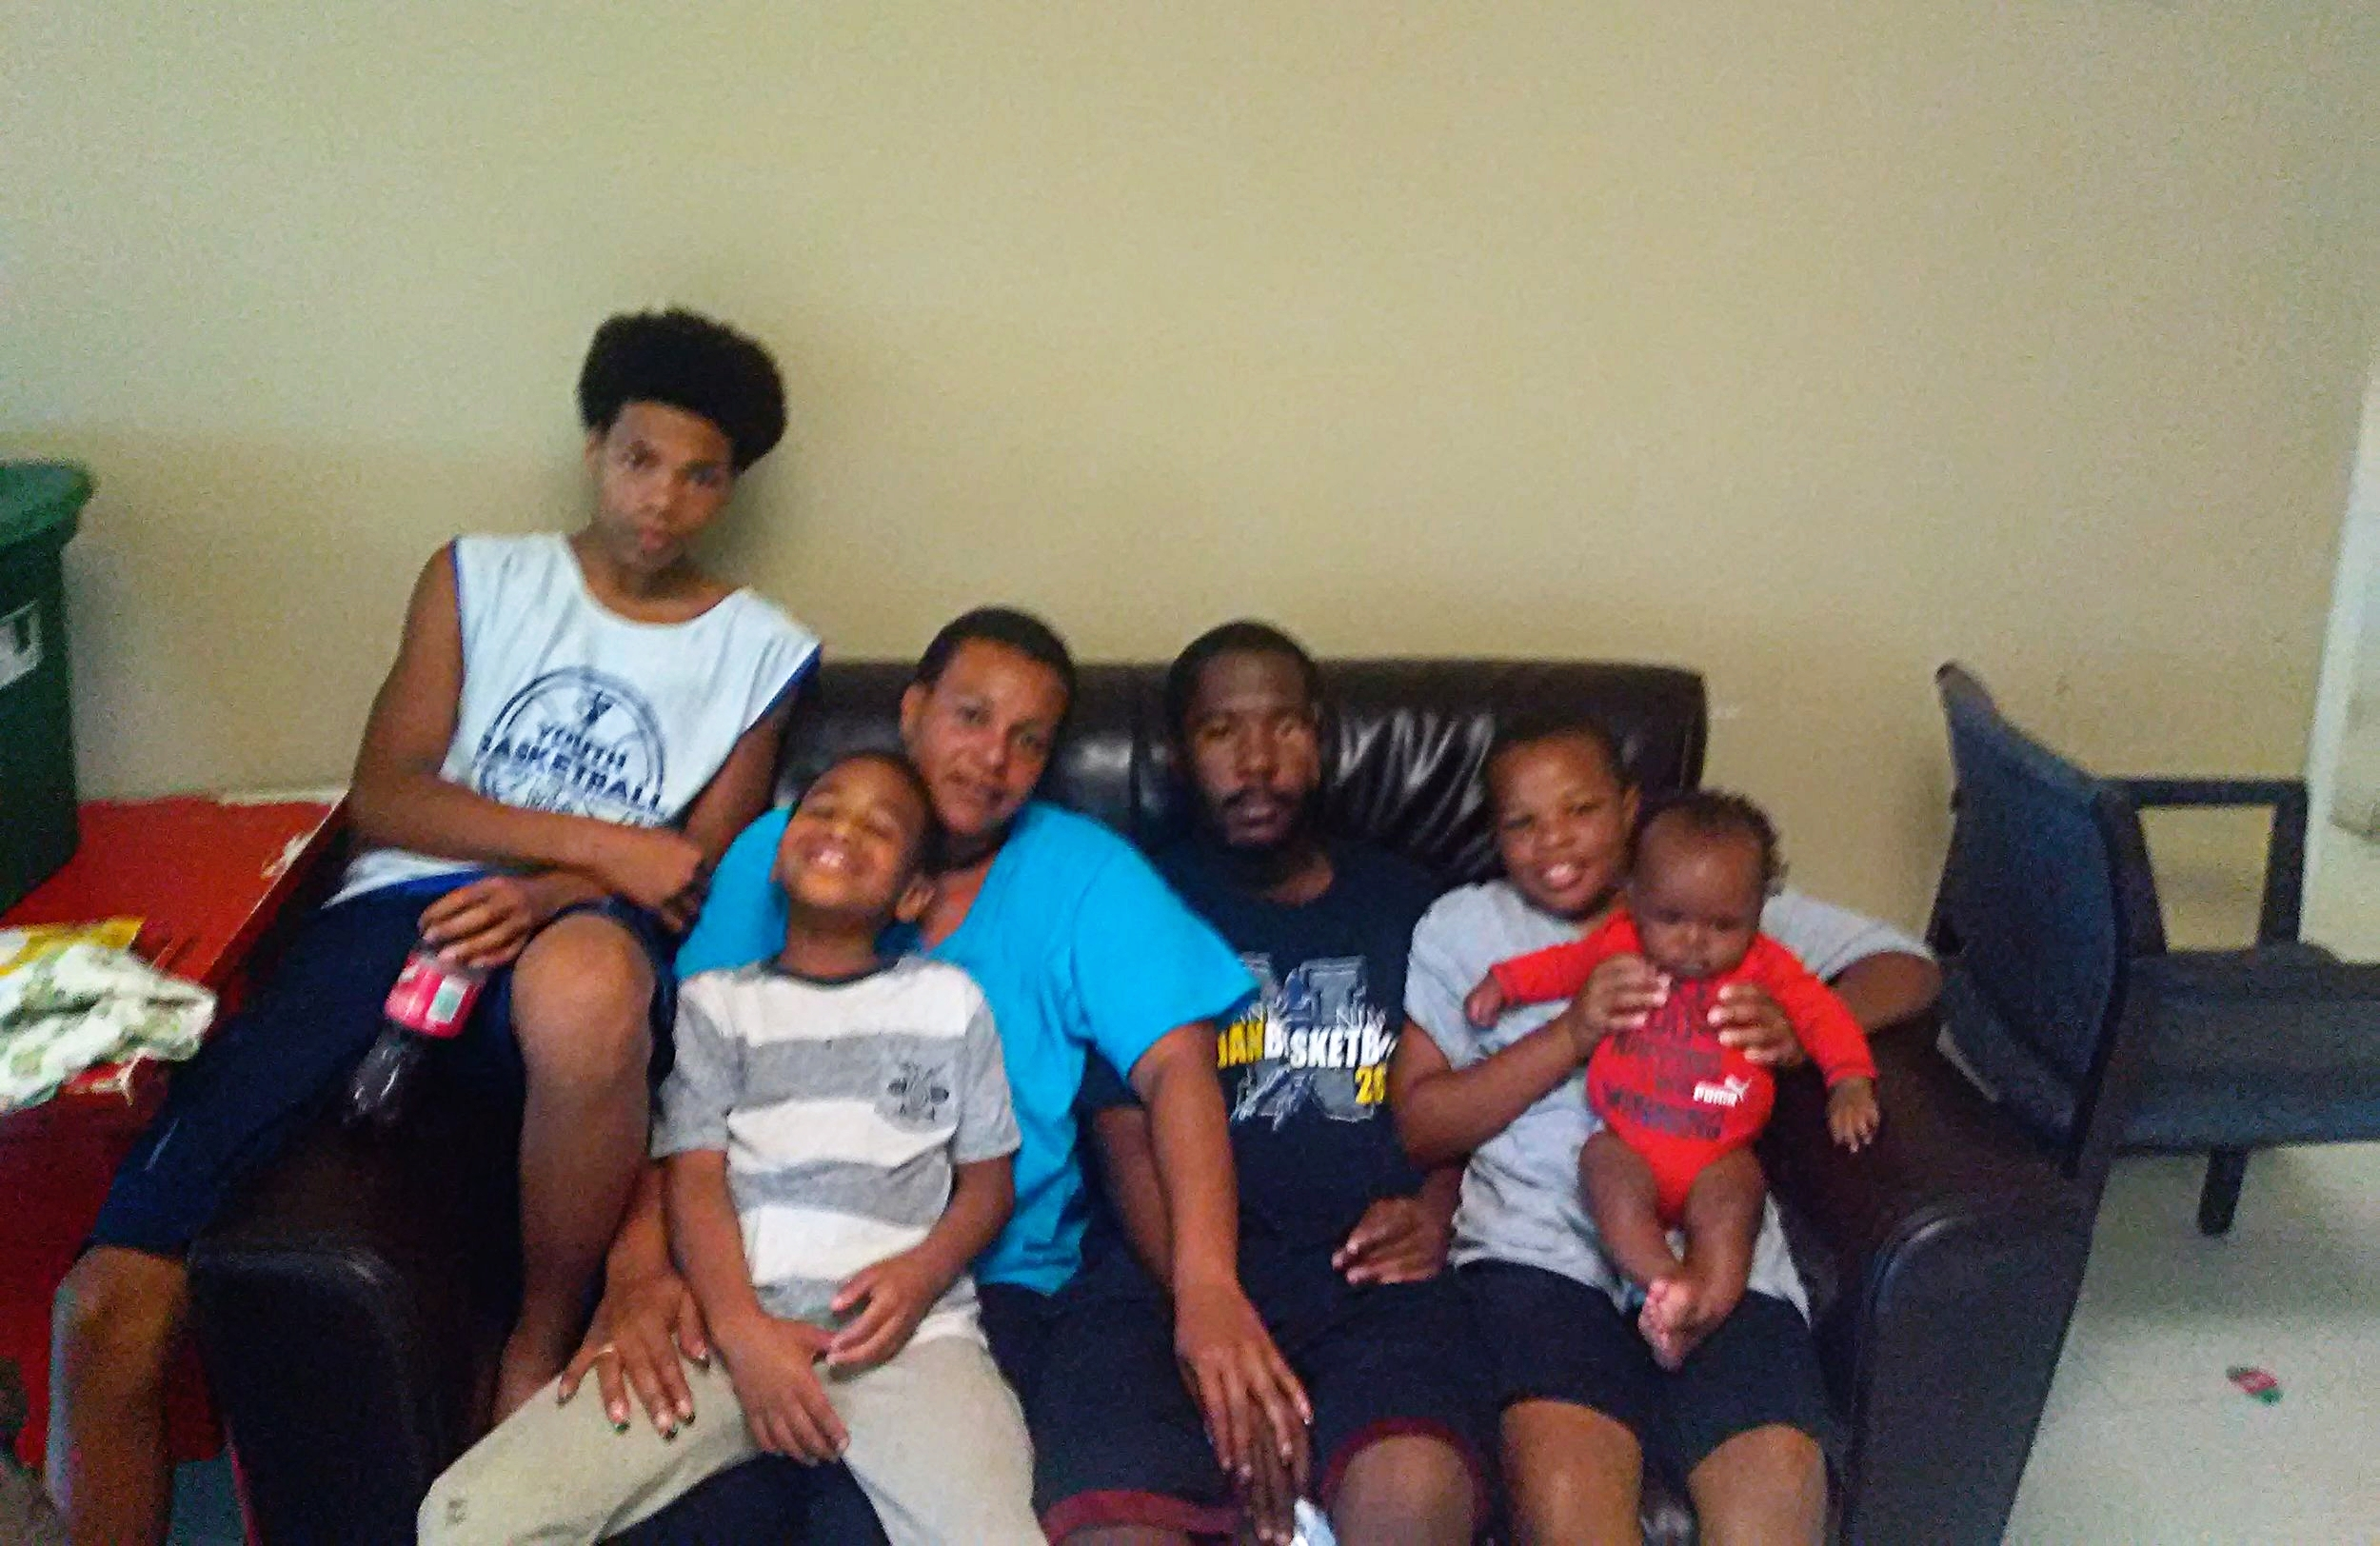 Temesha's Family